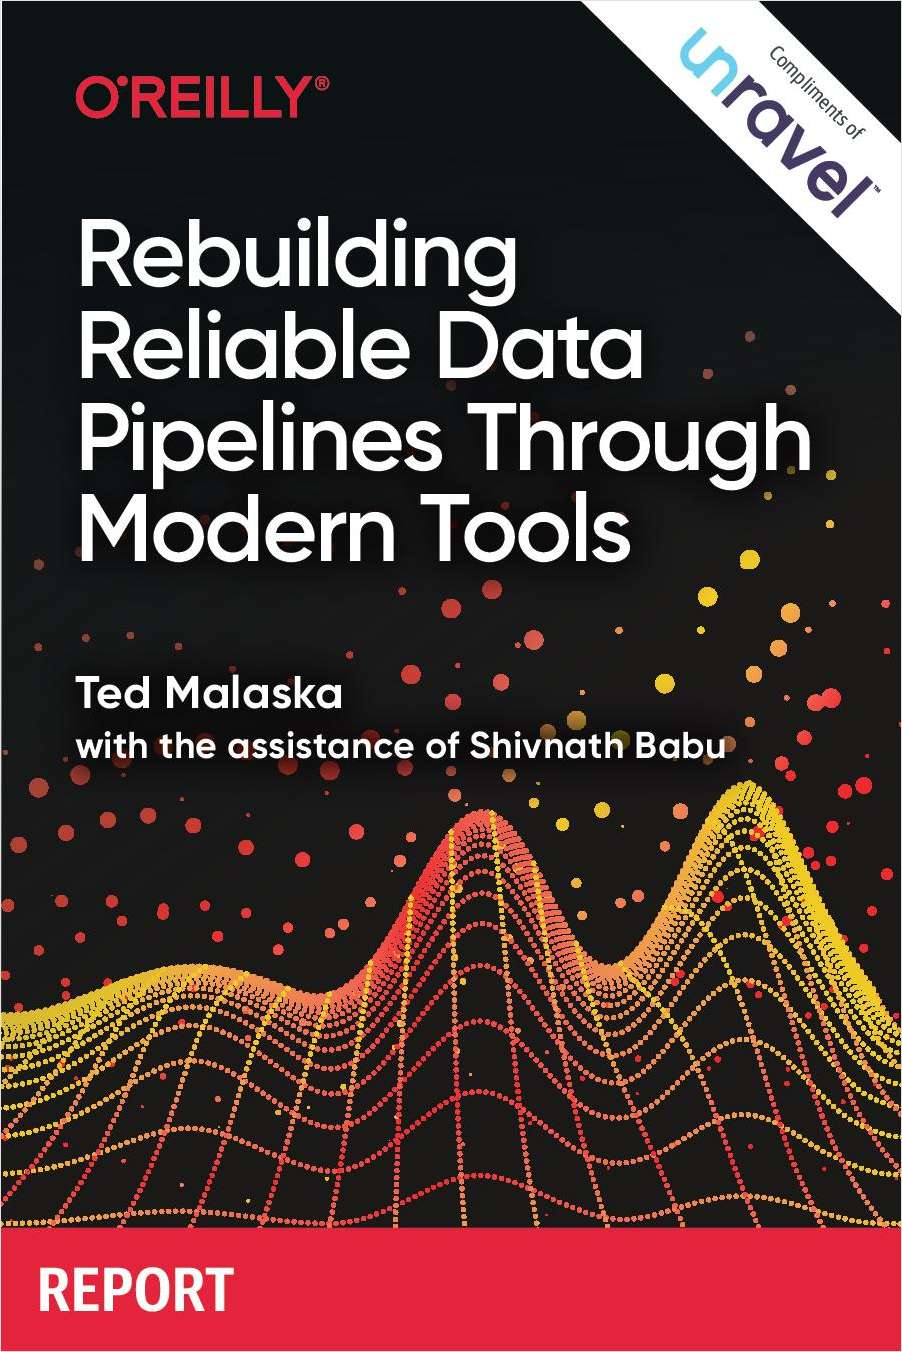 Rebuilding Reliable Data Pipelines Through Modern Tools